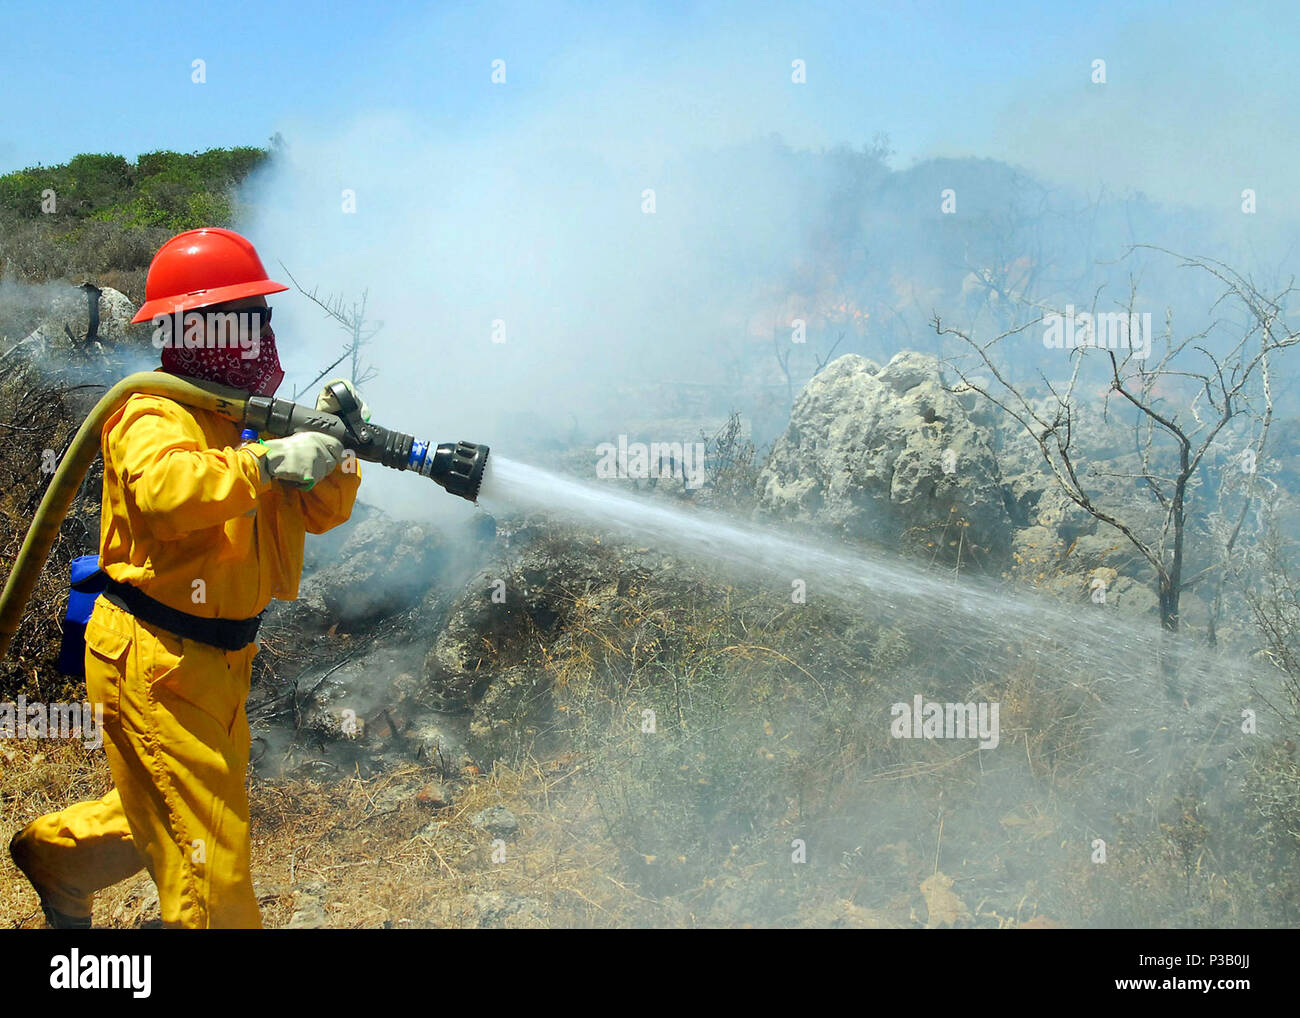 Crete, Greece (July 23, 2008) Georgios Sgouromalis, a Navy civilian firefighter, fights a brush fire near the Chania International Airport. Naval Support Activity (NSA) Souda Bay responded to a request for assistance from local authorities and dispatched 21 firefighters and five emergency vehicles to the scene, along with two Seabees and other personnel for ground support and liaison. Stock Photo